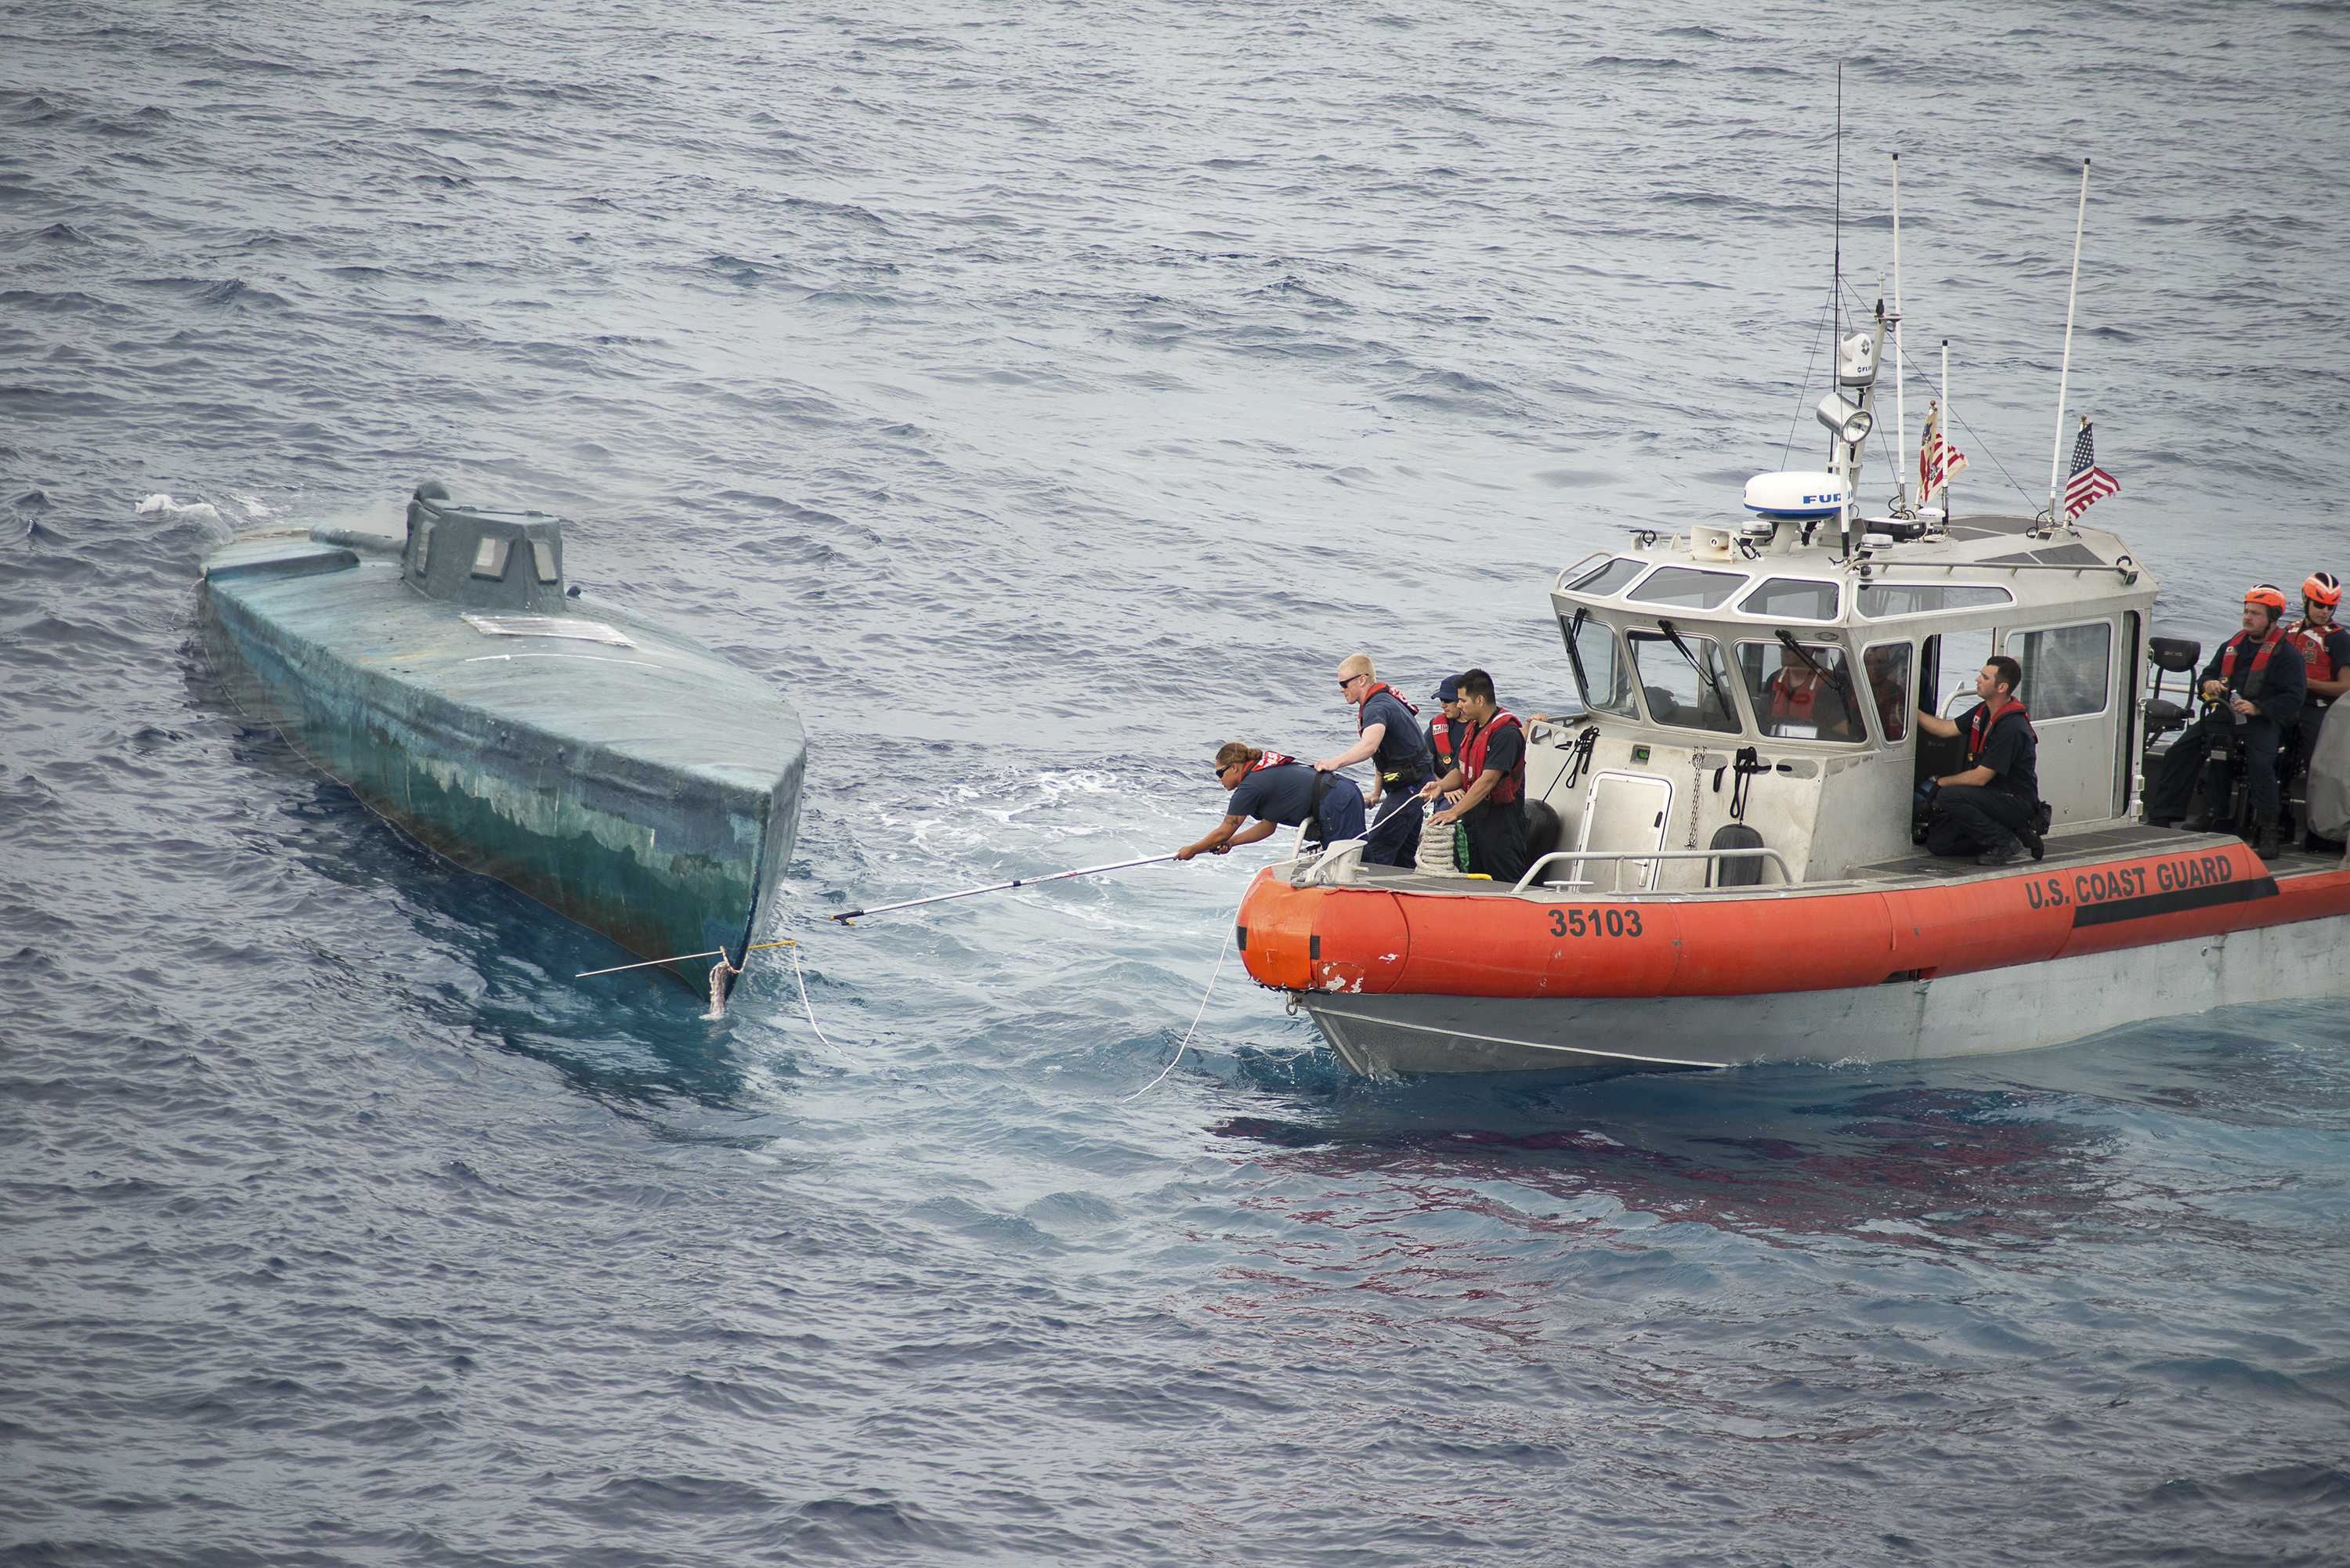 Crew from the U.S. Coast Guard Cutter Stratton stop a Self-Propelled Semi Submersible off the coast of Central America in this U.S. Coast Guard picture taken July 18, 2015 and released August 5, 2015.